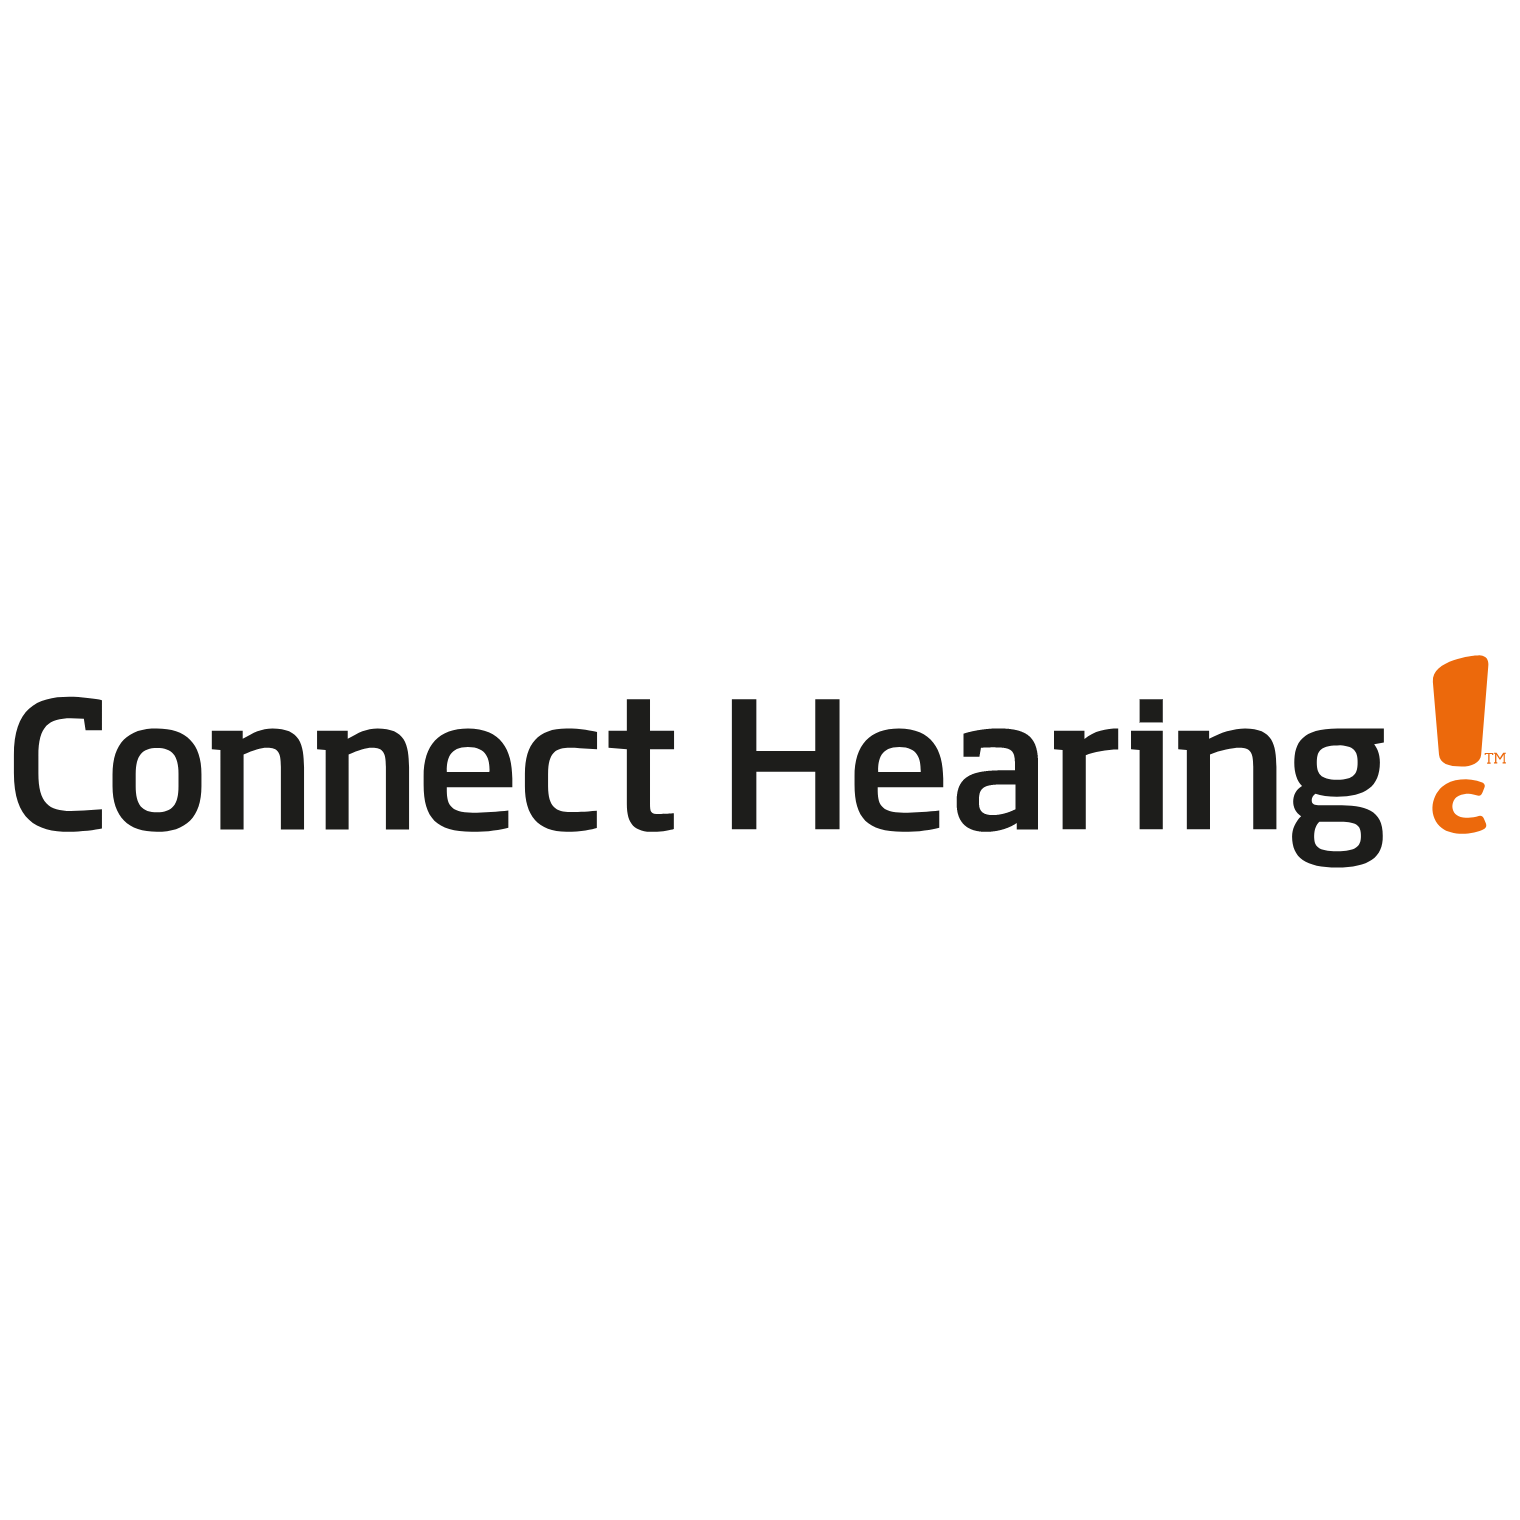 Connect Hearing - Deakin, ACT 2600 - (02) 6285 1098 | ShowMeLocal.com